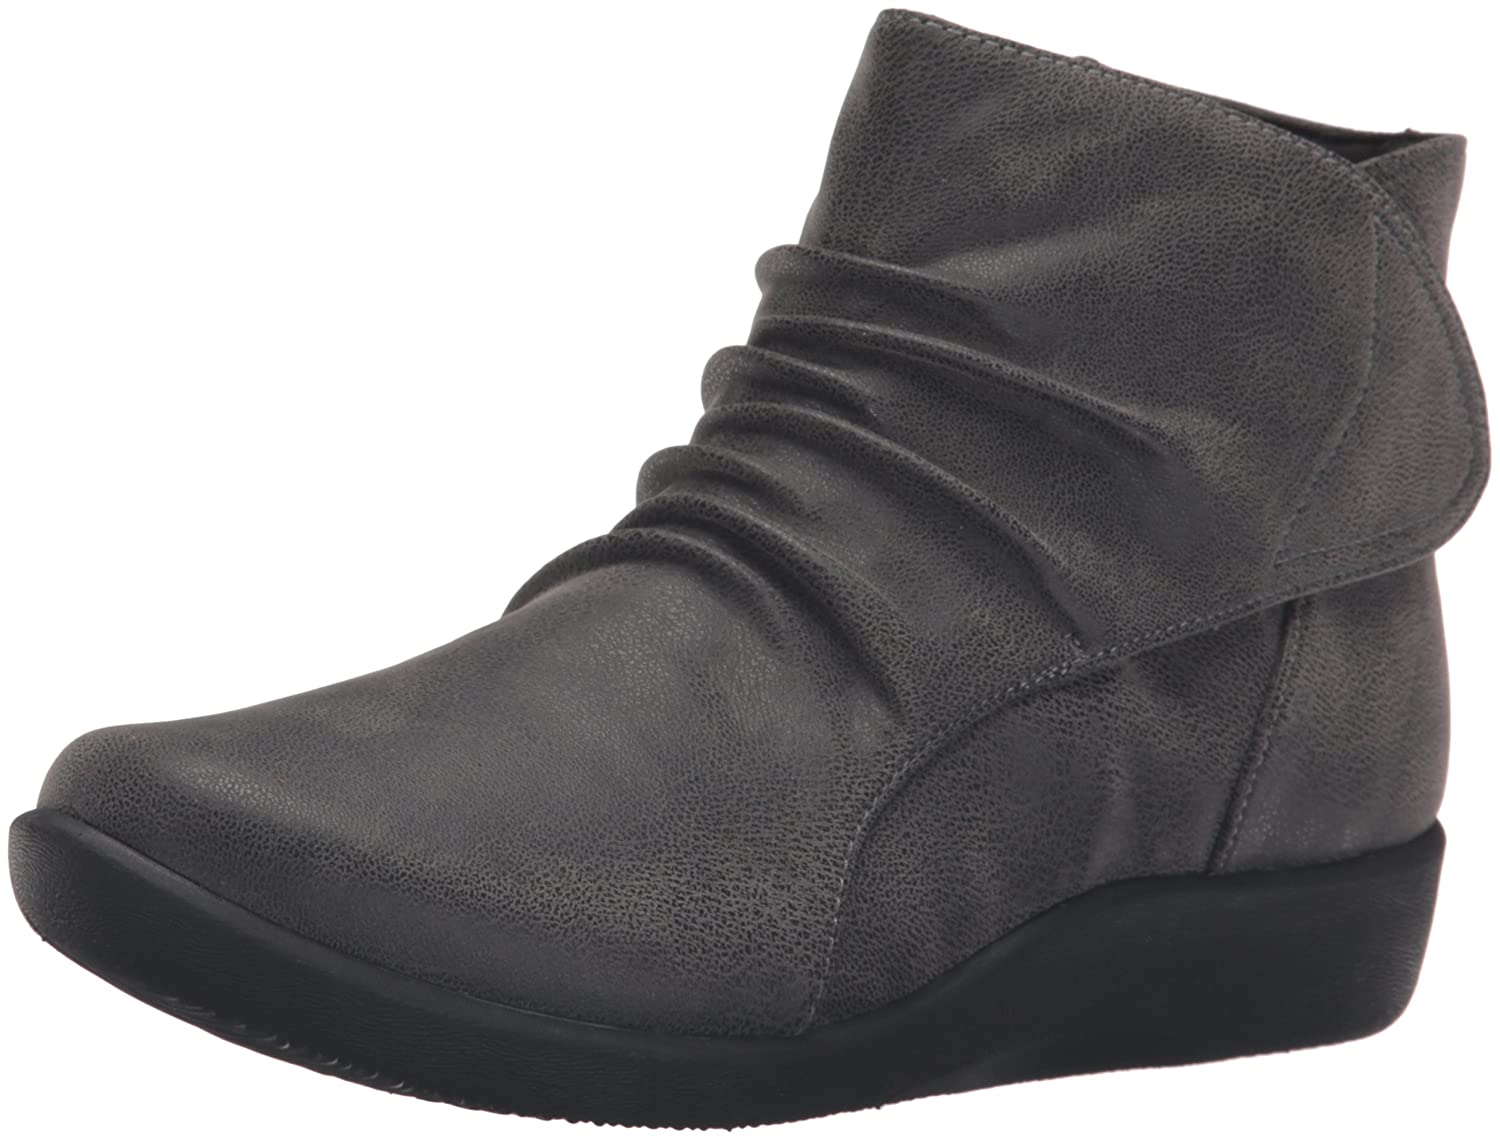 CLARKS Women's Sillian Chell Boot B0198WAUC8 7 B(M) US|Grey Synthetic Nubuck